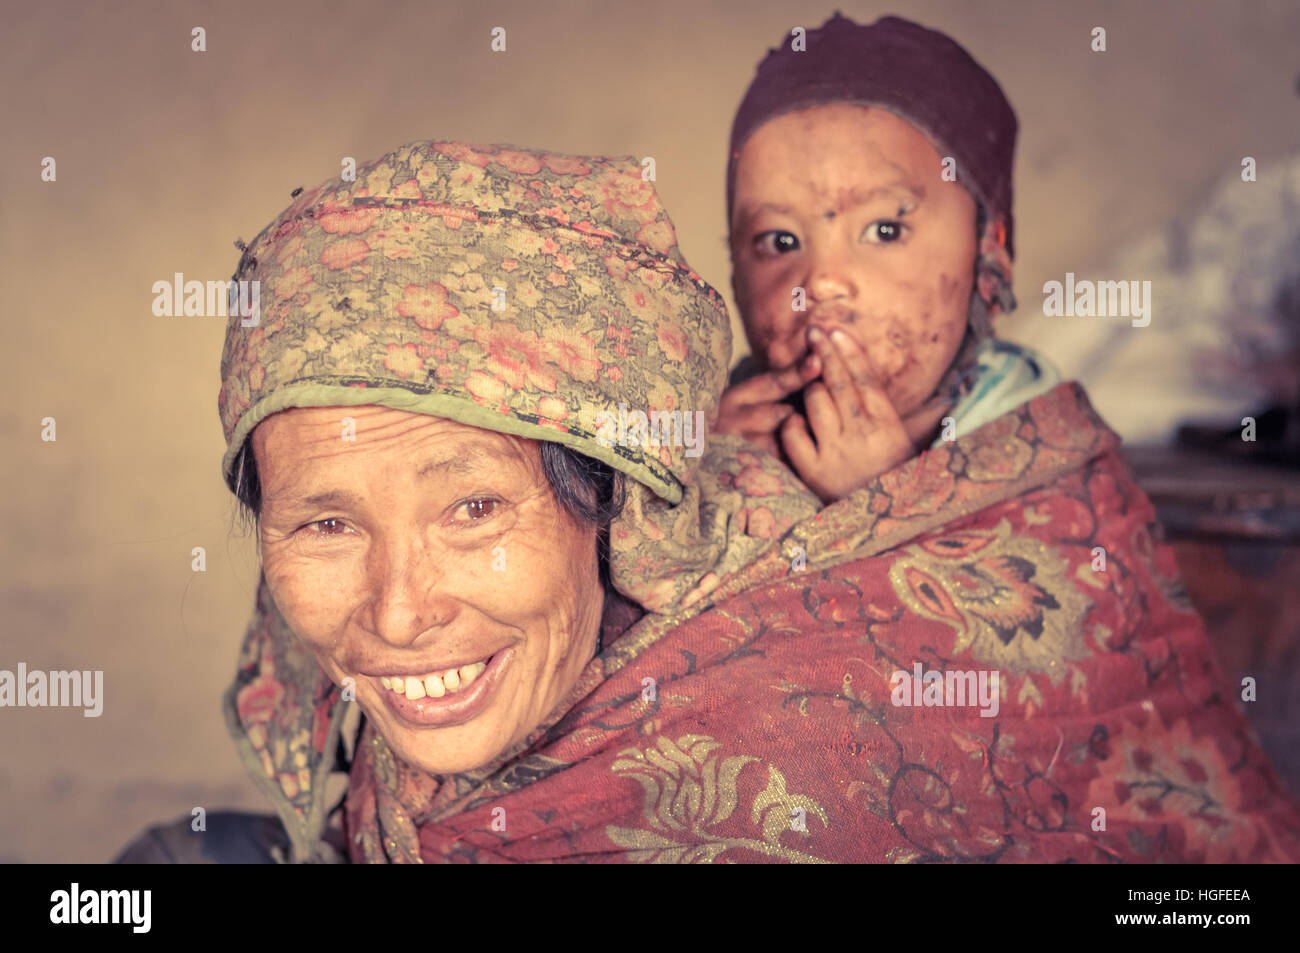 Dolpo, Nepal - circa May 2012: Photo of native brown-eyed woman in headcloth carrying child with brown cap on her - Stock Image